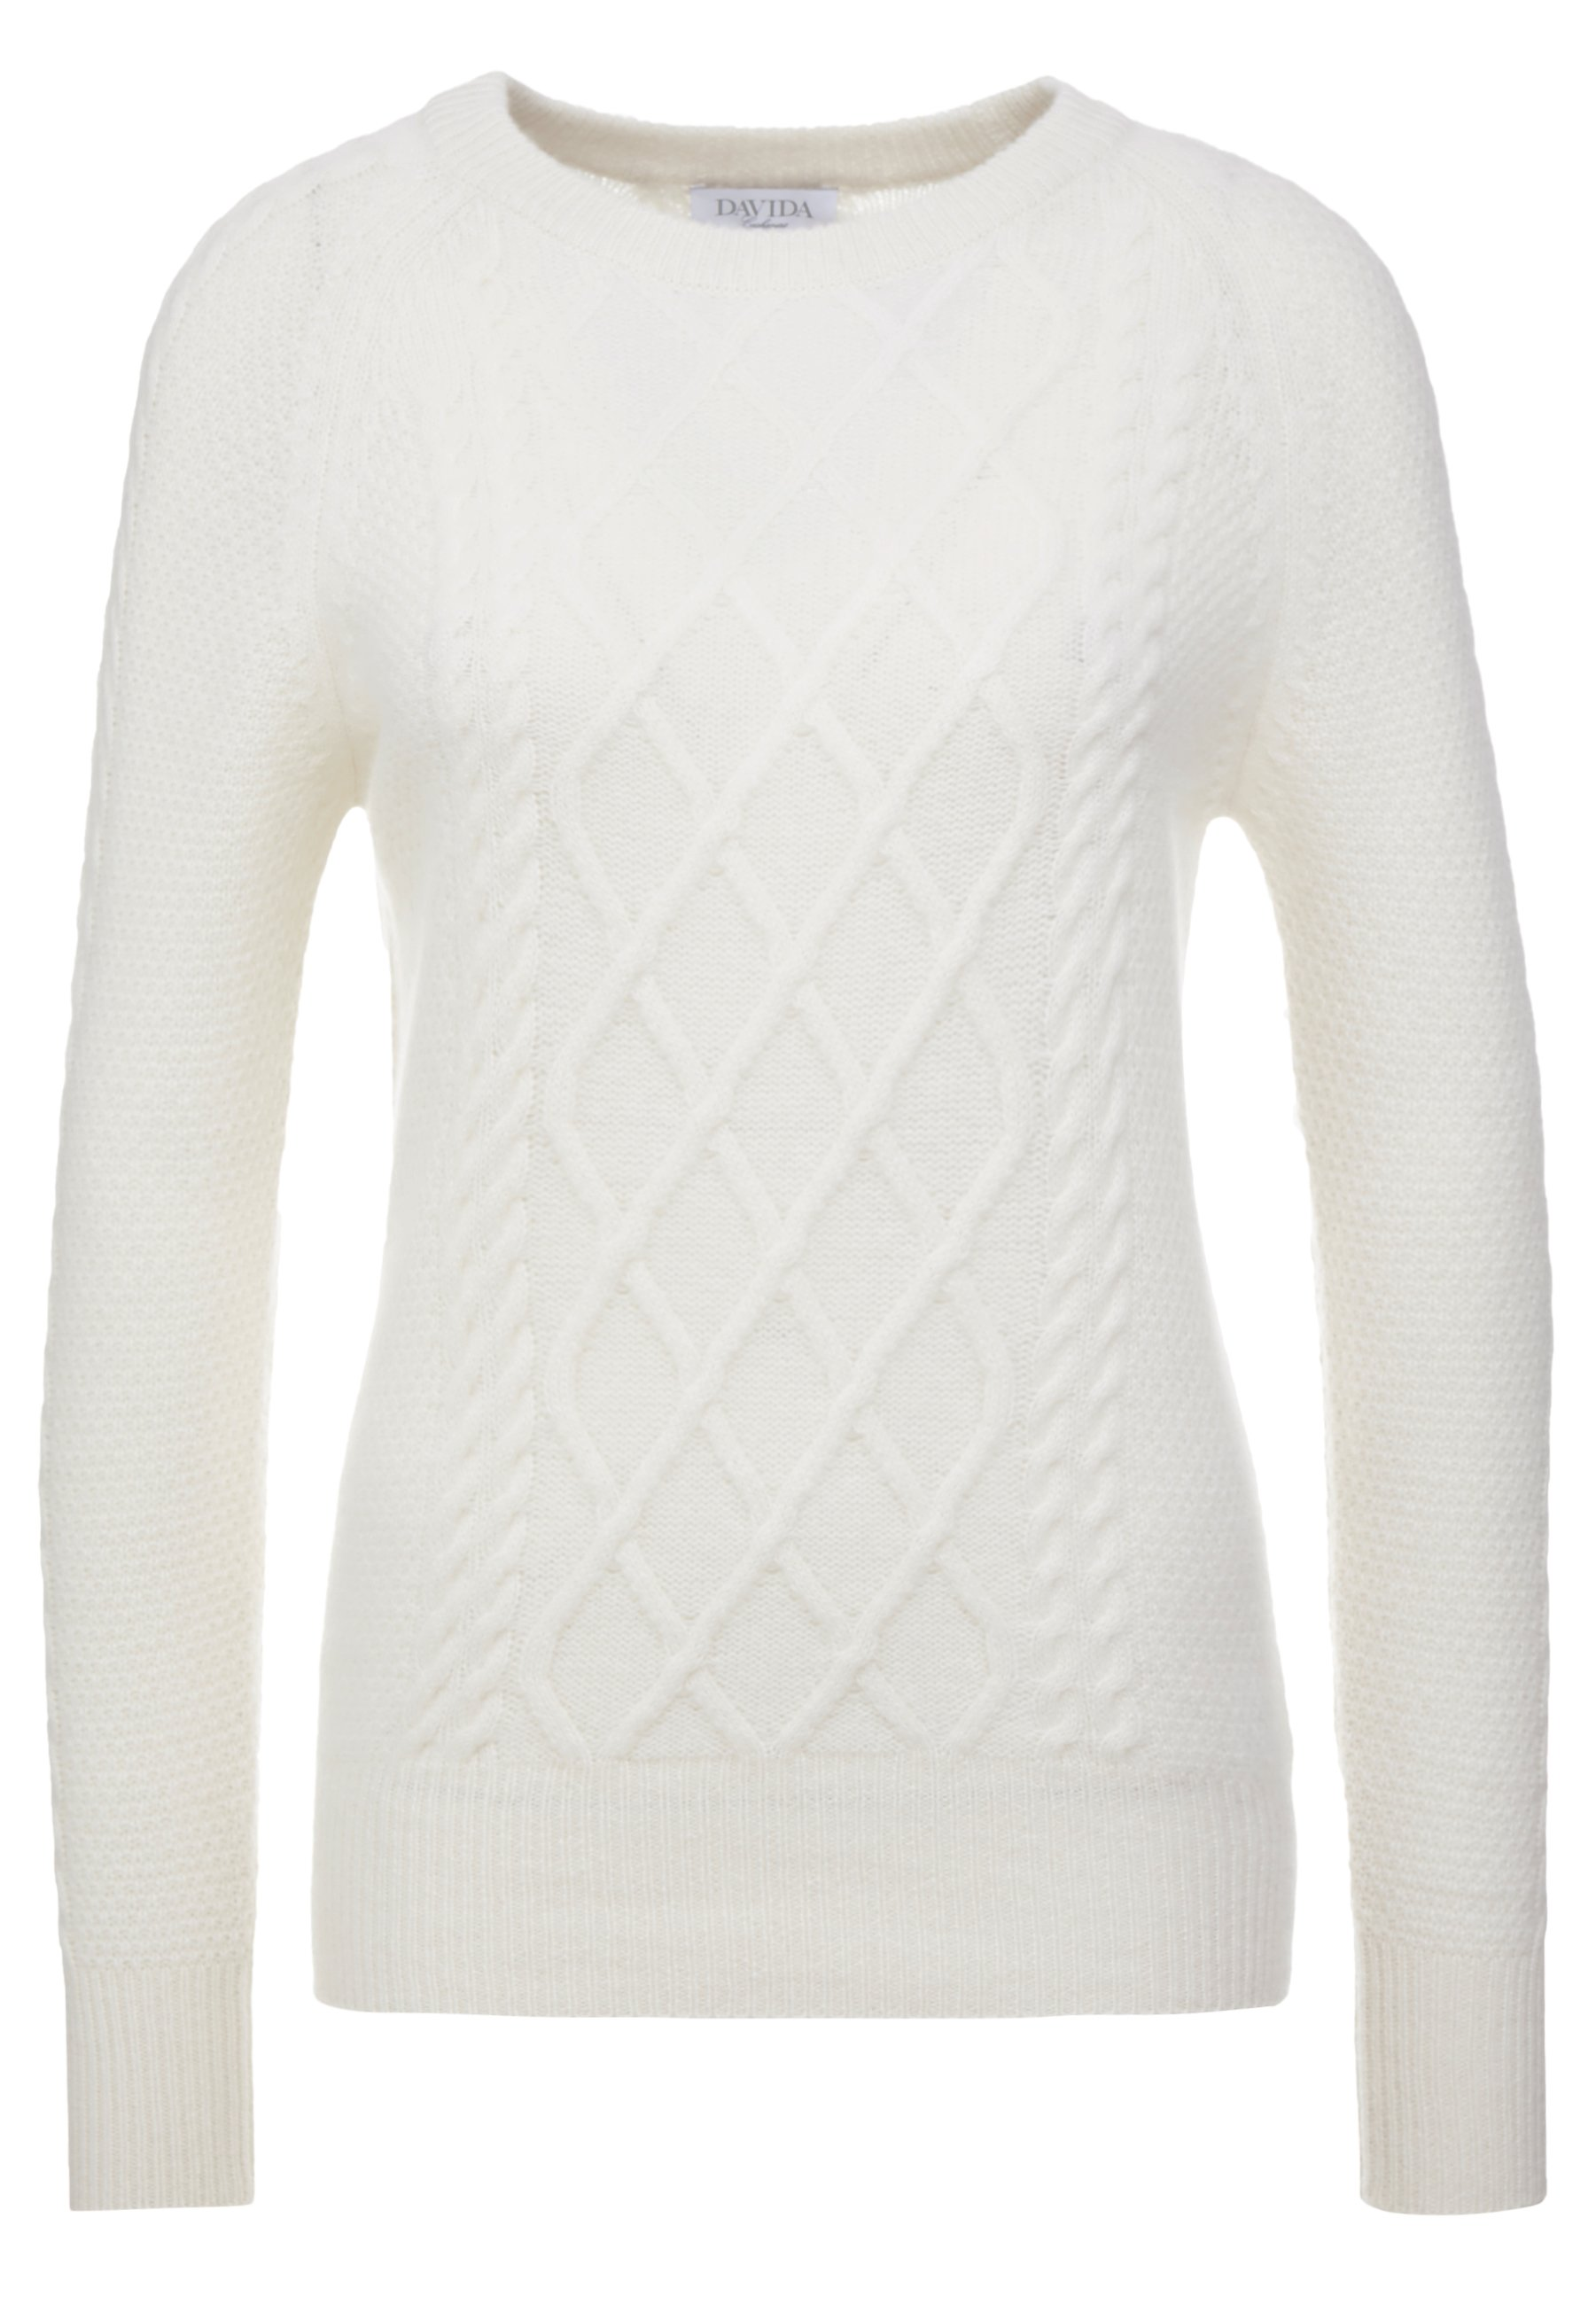 CABLE DETAIL Jumper white